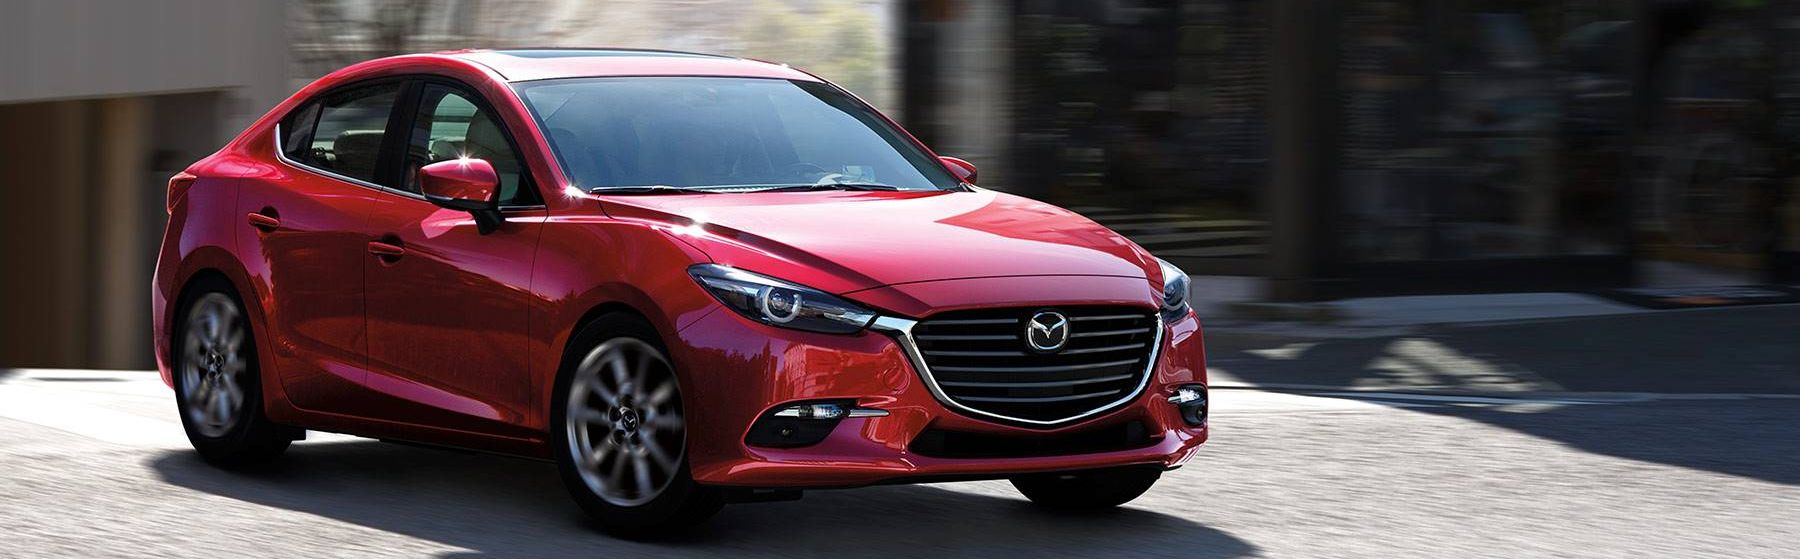 Mazda 3 Owners Manual: Receiving an Incoming Call